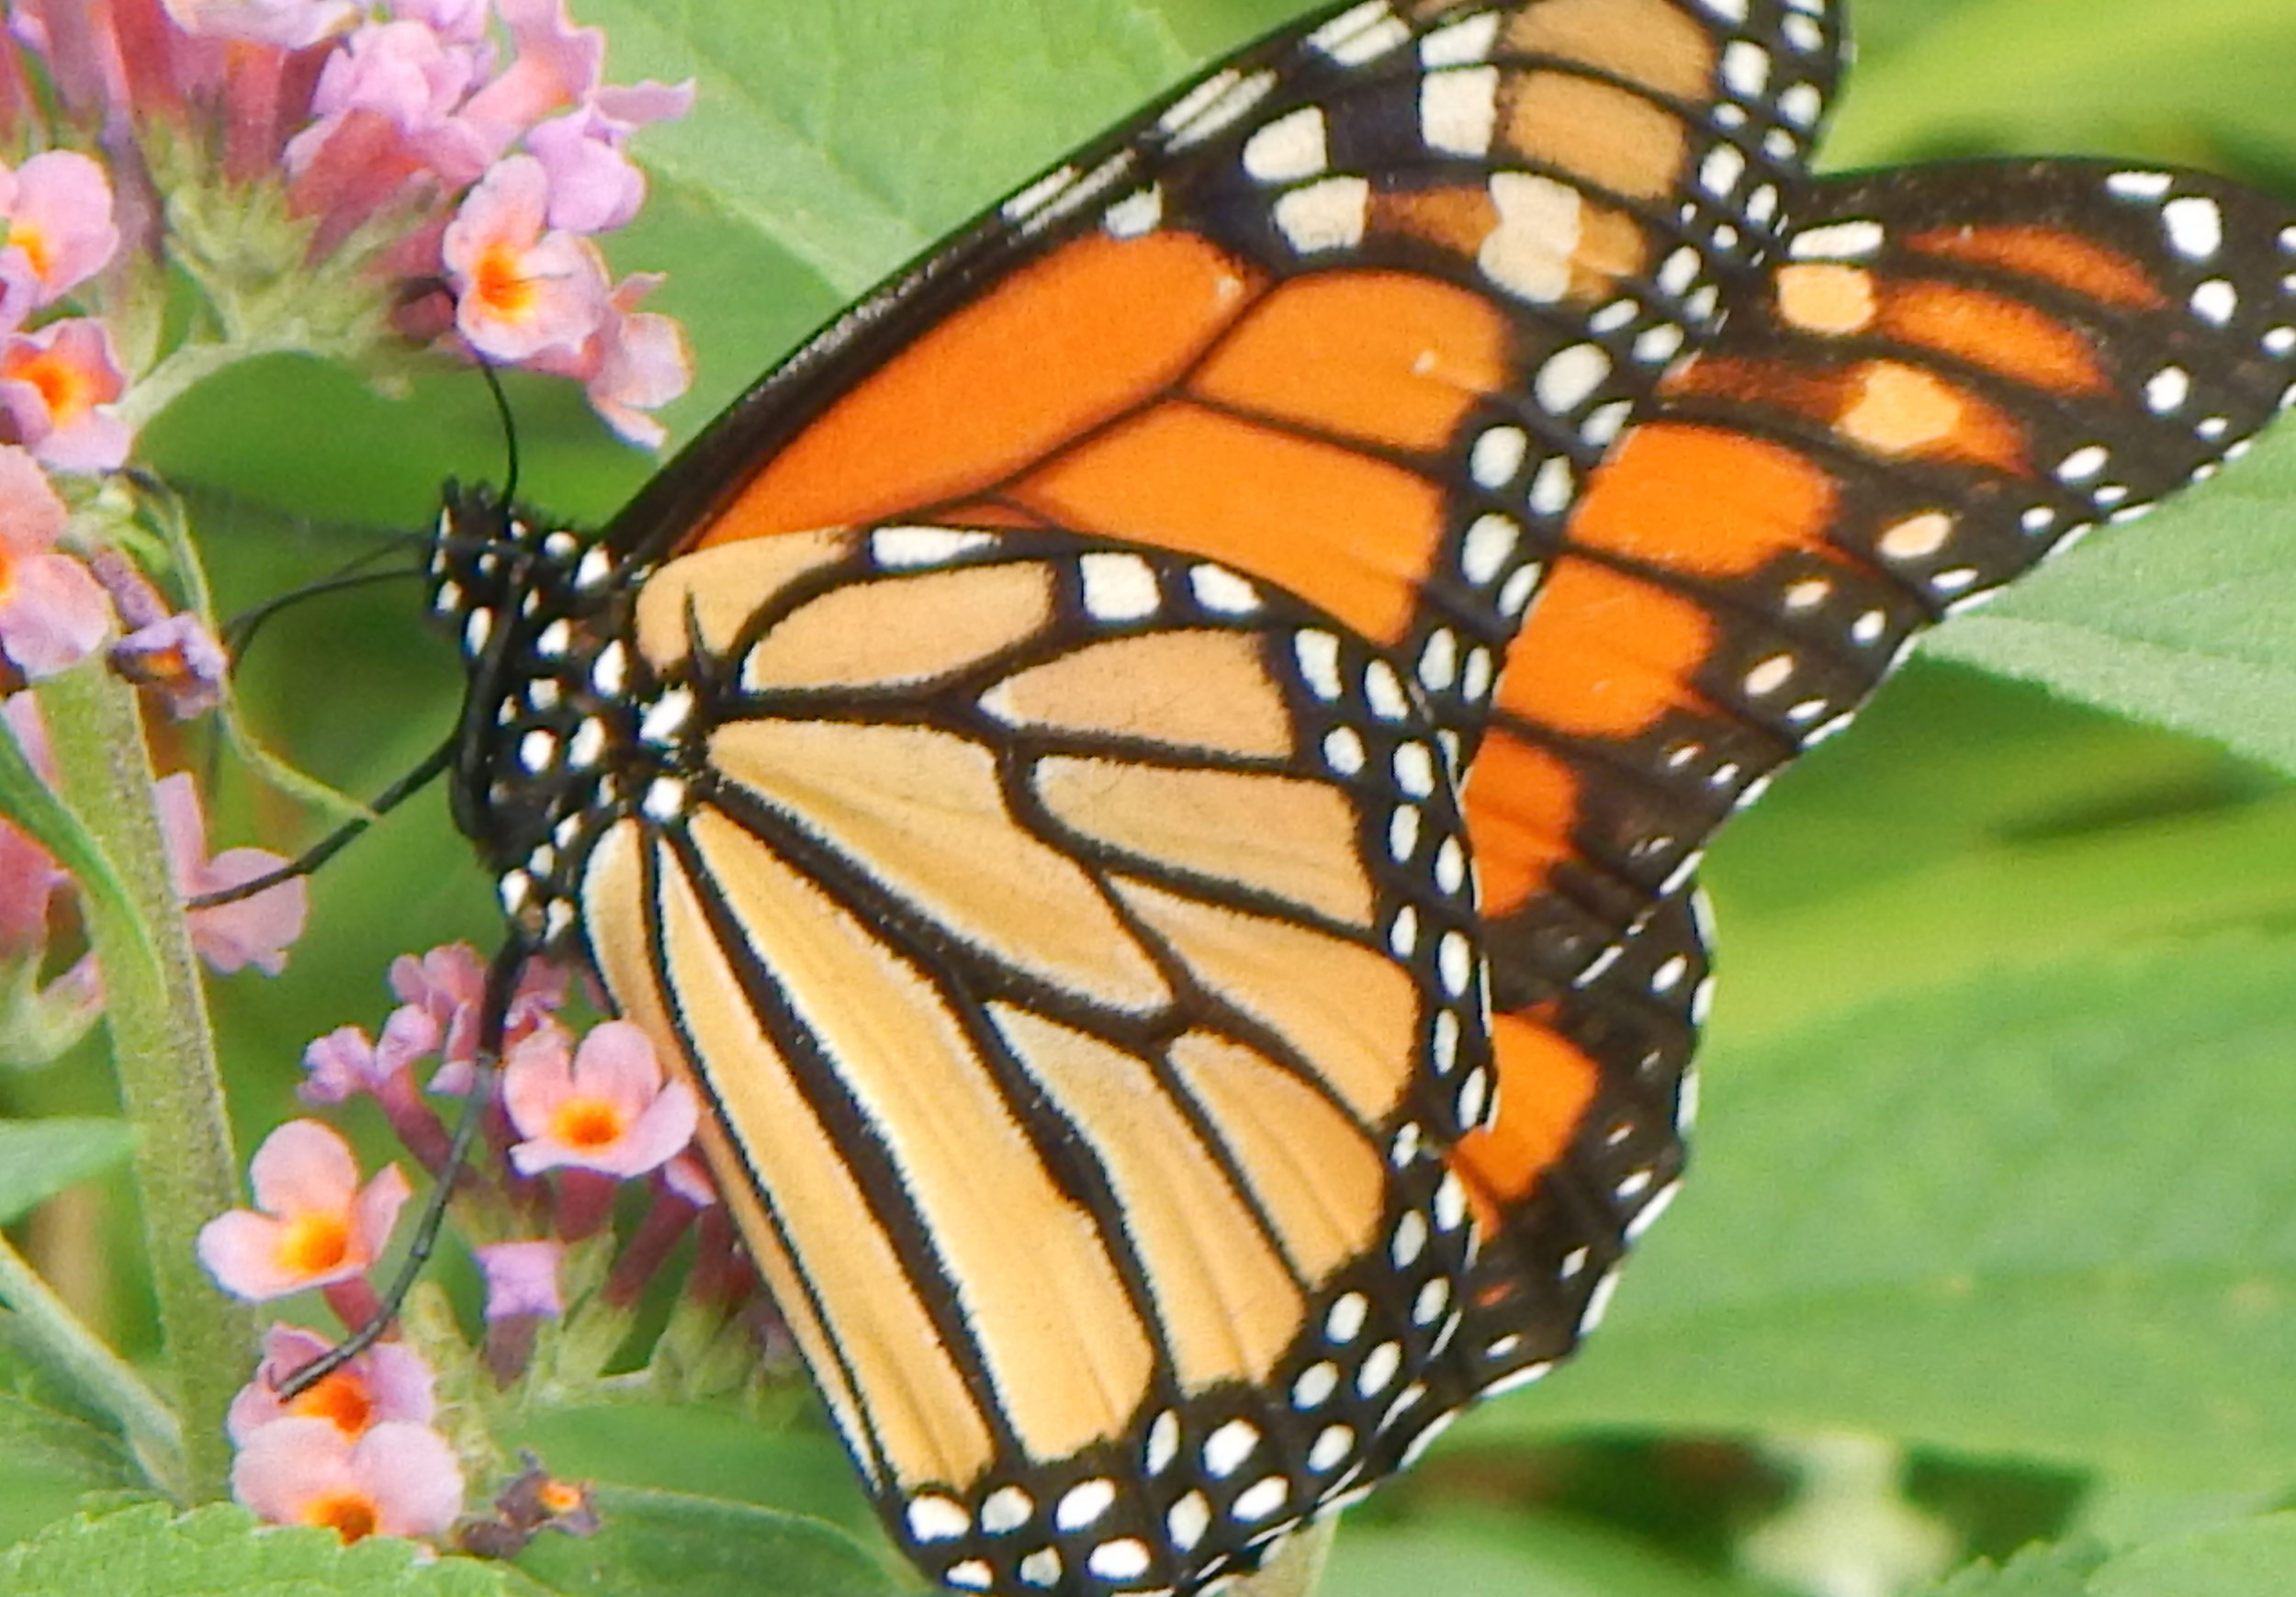 Monarchs are Migrating - REFRESH YOUR GARDEN AND HELP THE MIGRATING MONARCHS BY PLANTING ASTERS, SNAPDRAGONS, BUTTERFLY WEEDS, PHLOX, VERBENAS, AND OTHER NECTAR RICH FLOWERS